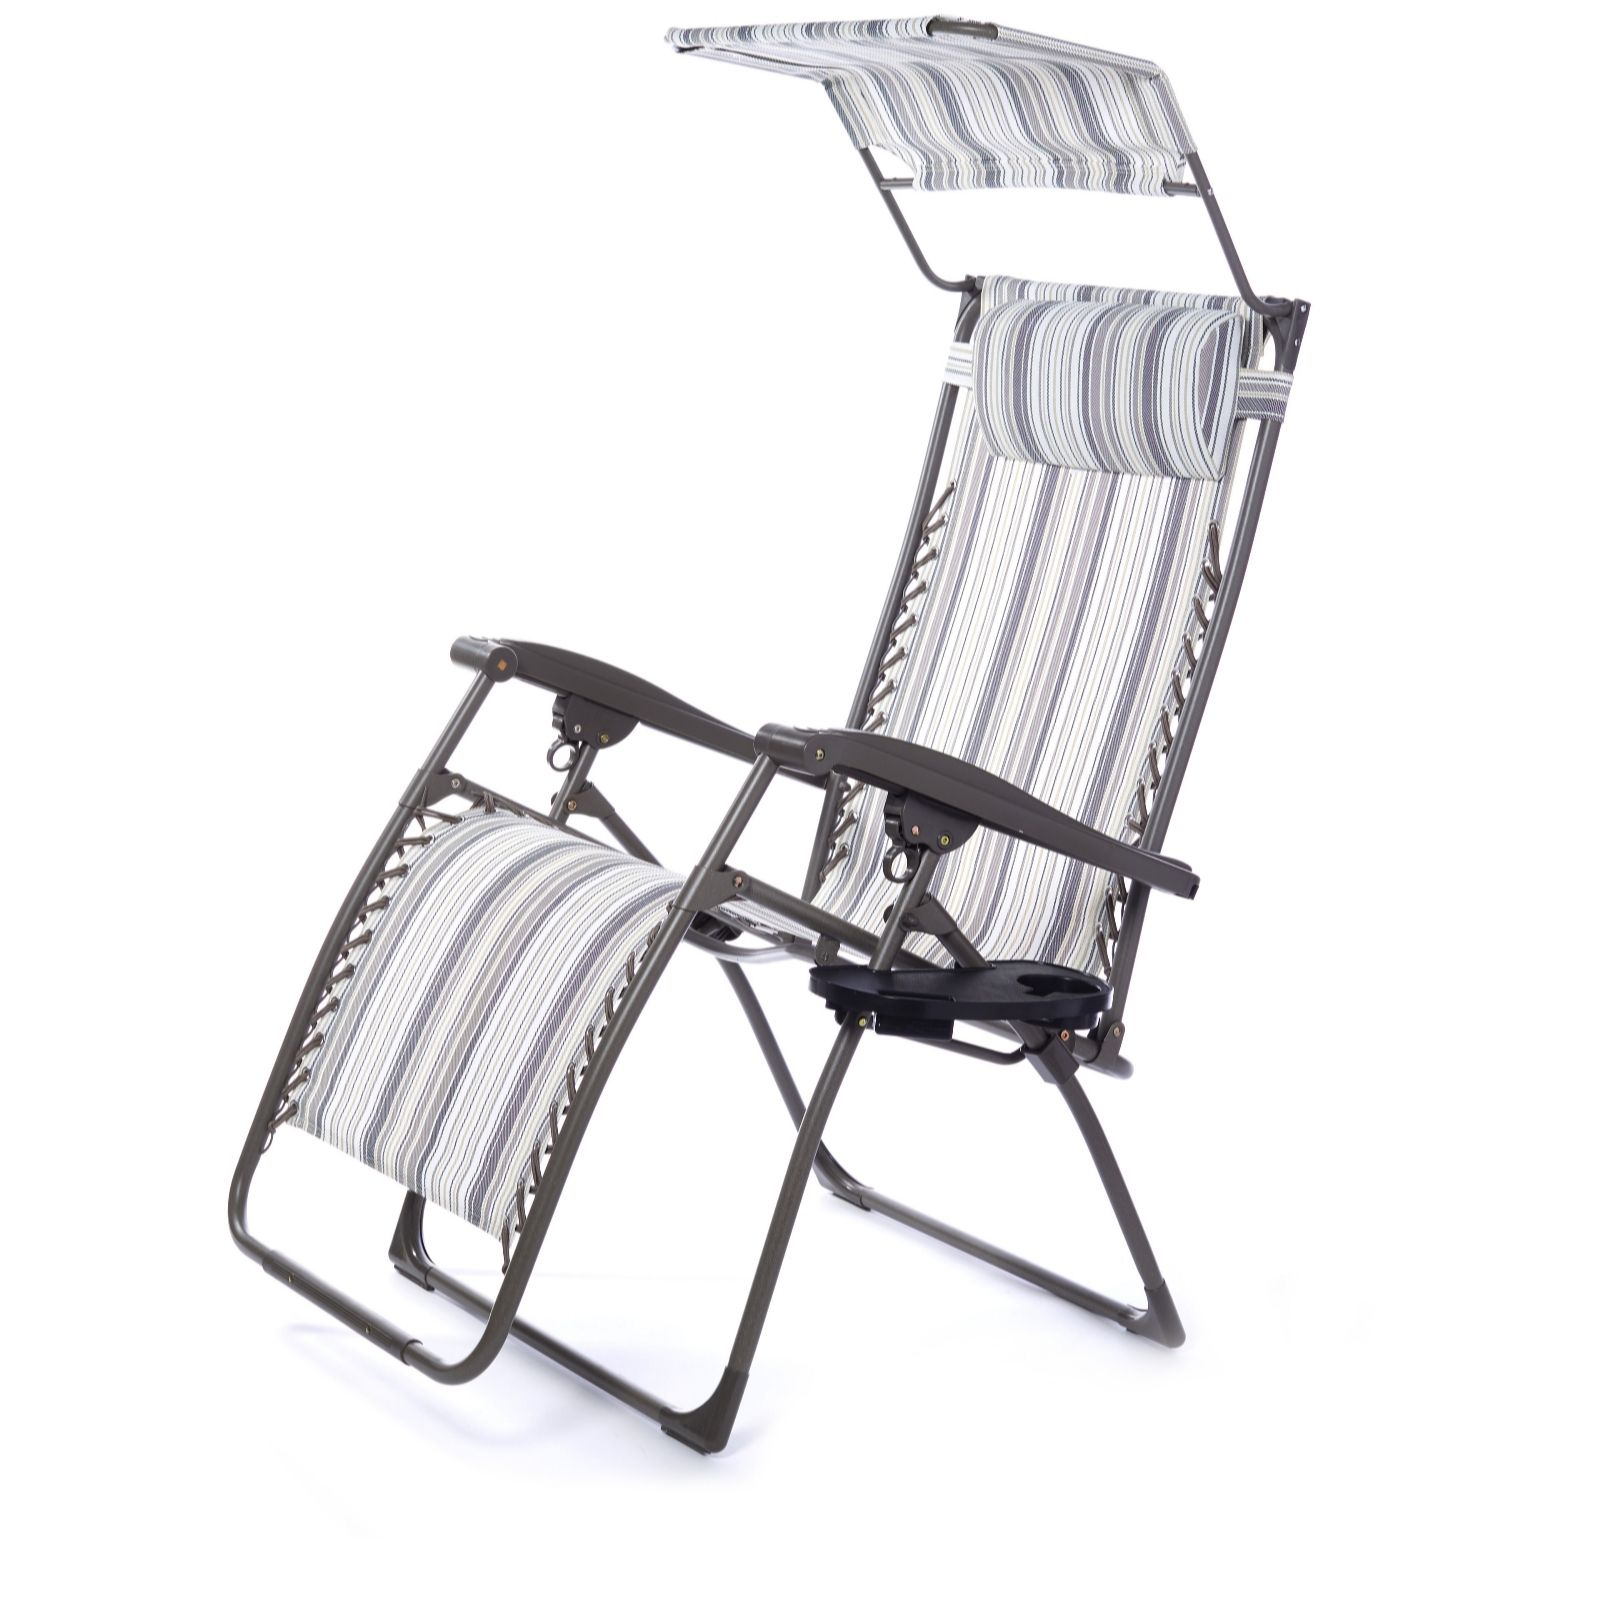 Garden Furniture Qvc multi position luxury sized recliner chair w/ drinks holder canopy